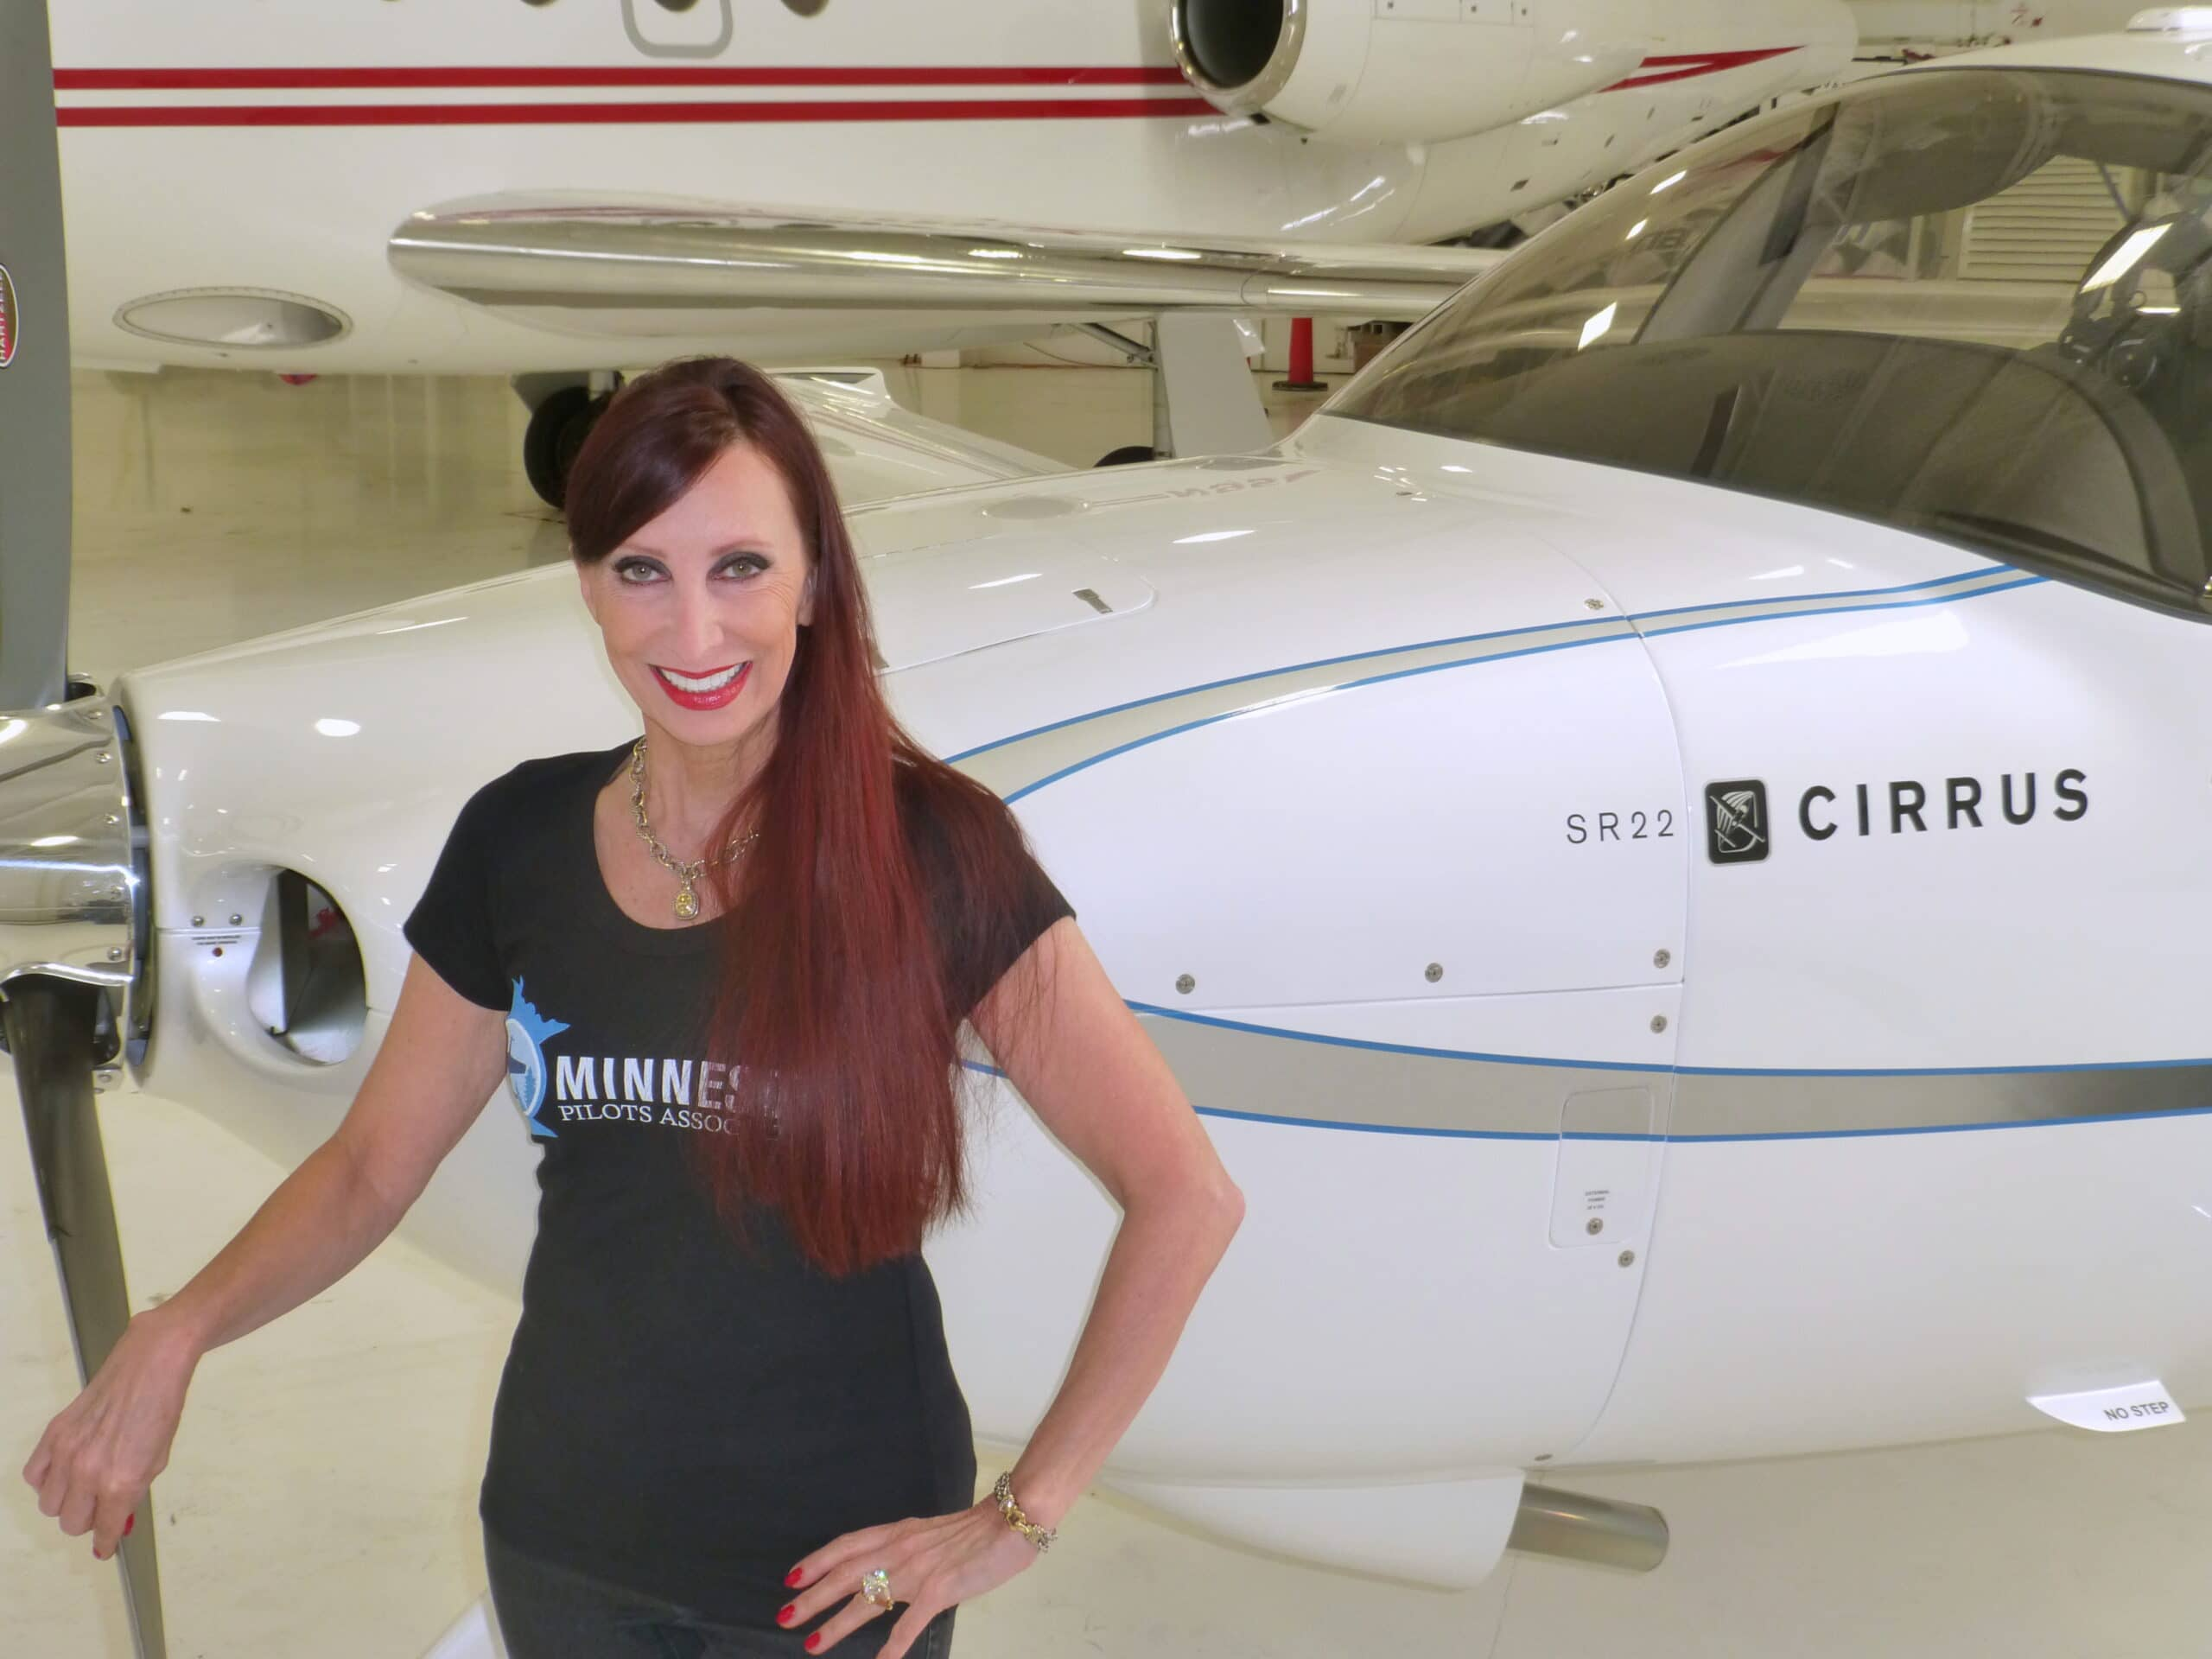 Tracy Lovness' Cirrus is an Air Race Flyer